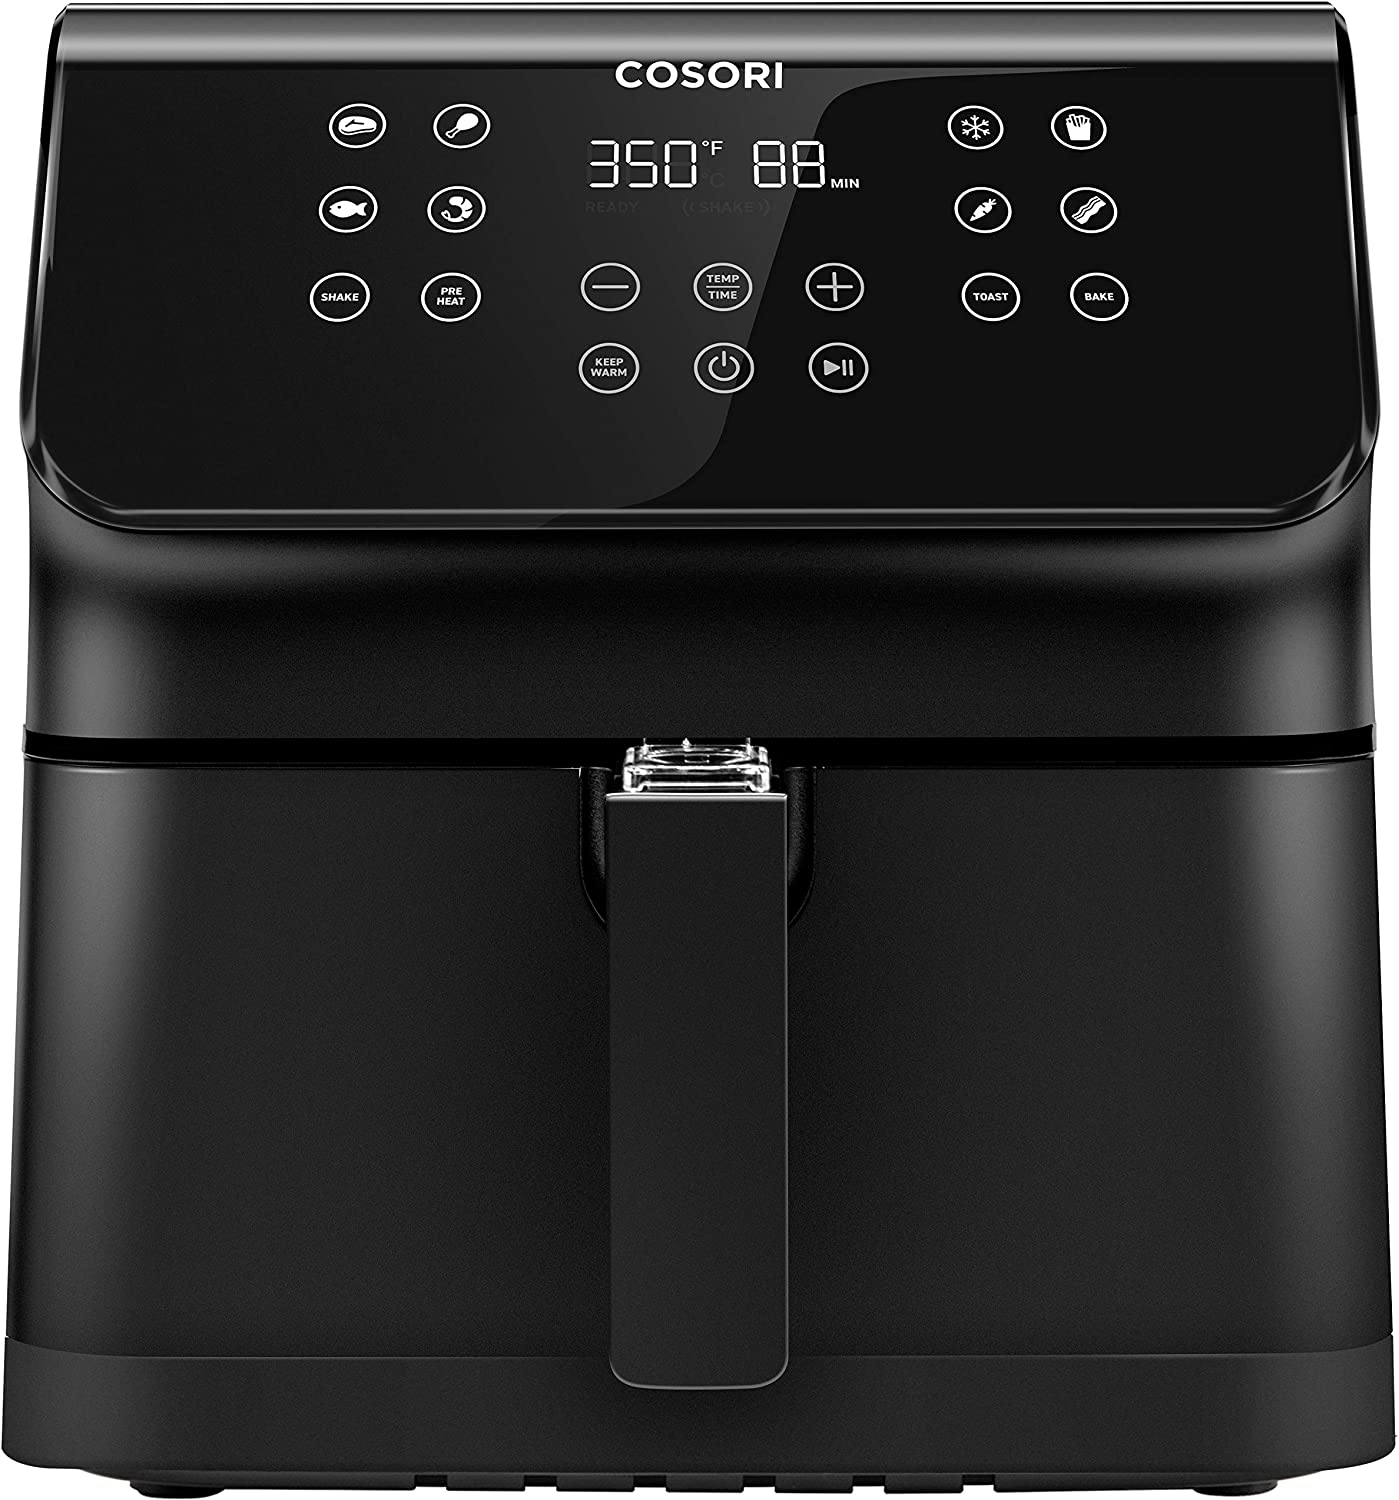 COSORI Air Fryer(100 Recipes), 12-in-1 Large XL Air Fryer Oven with Upgrade Customizable 10 Presets, Preheat, Shake Reminder, Digital Hot Oilless Cooker, 5.8QT, Black